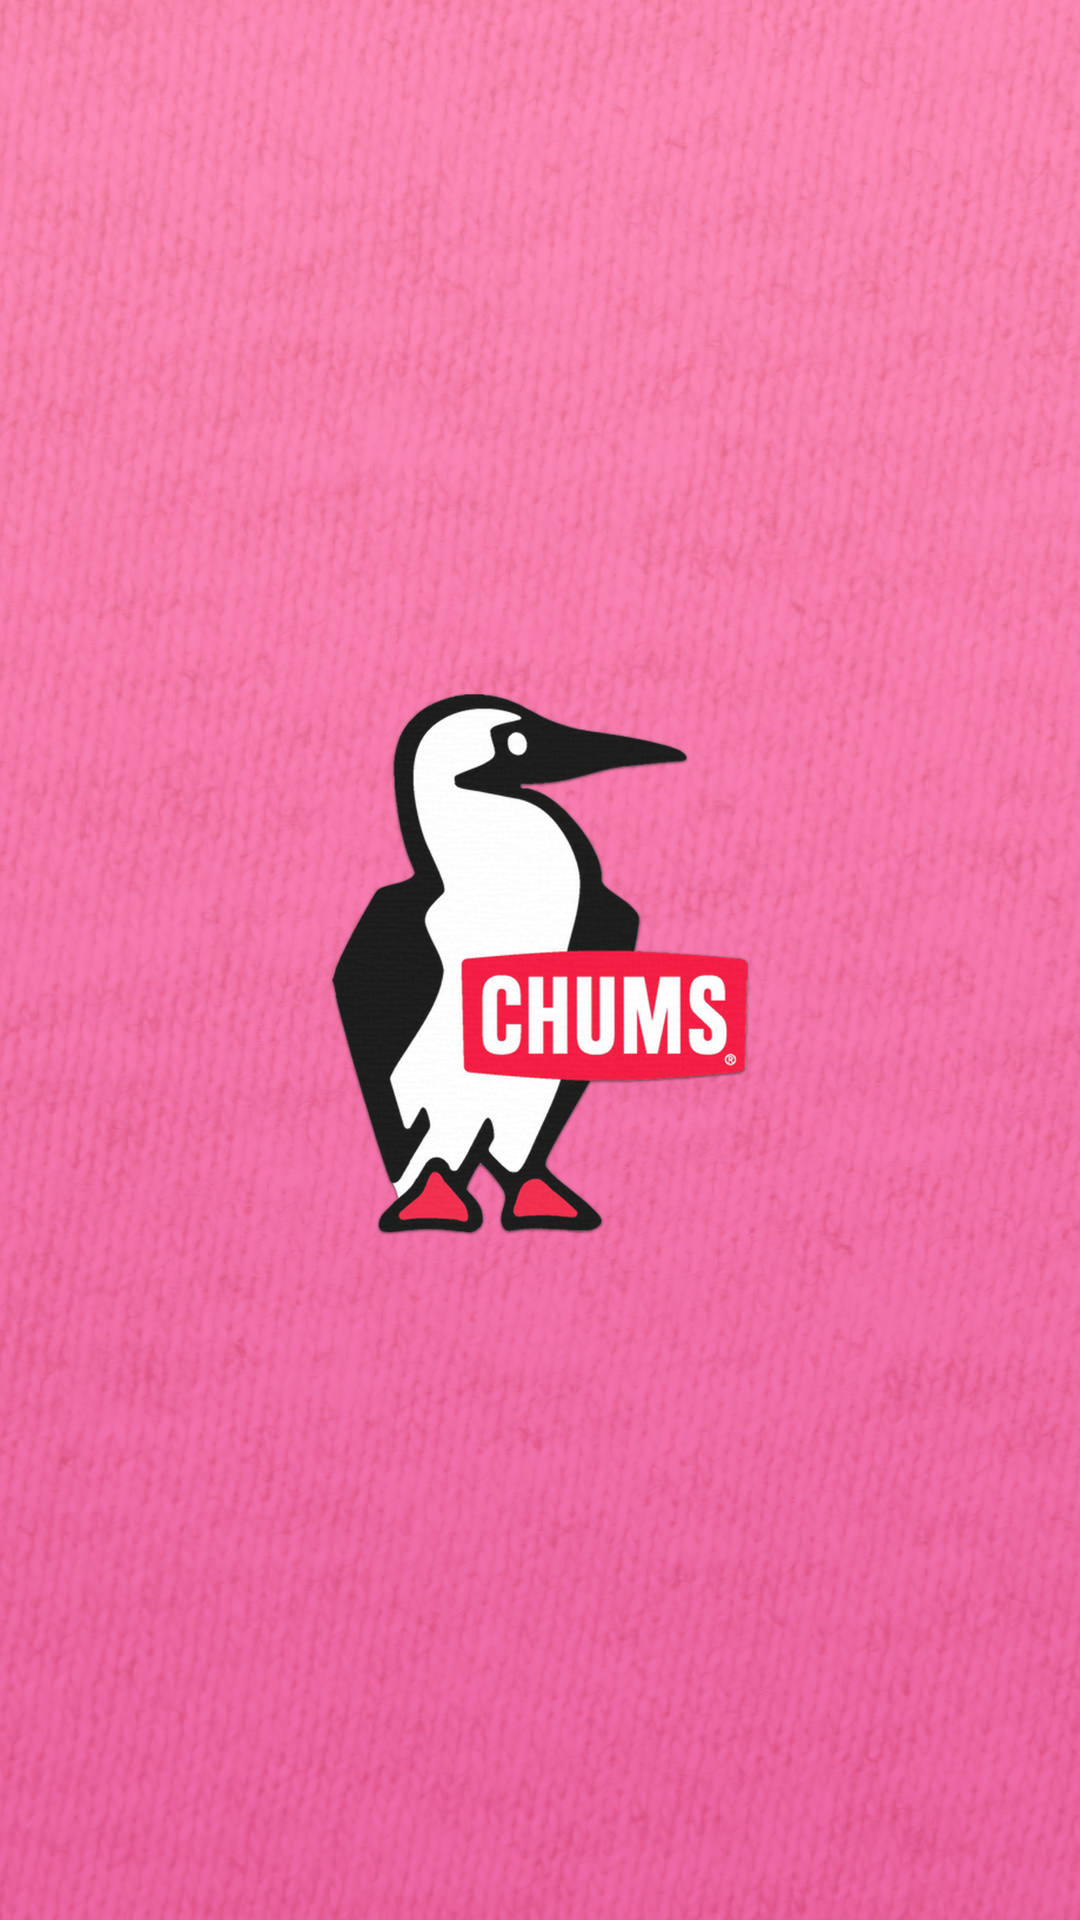 chums08 - 50 CHUMS HQ Smartphone Wallpaper Collection